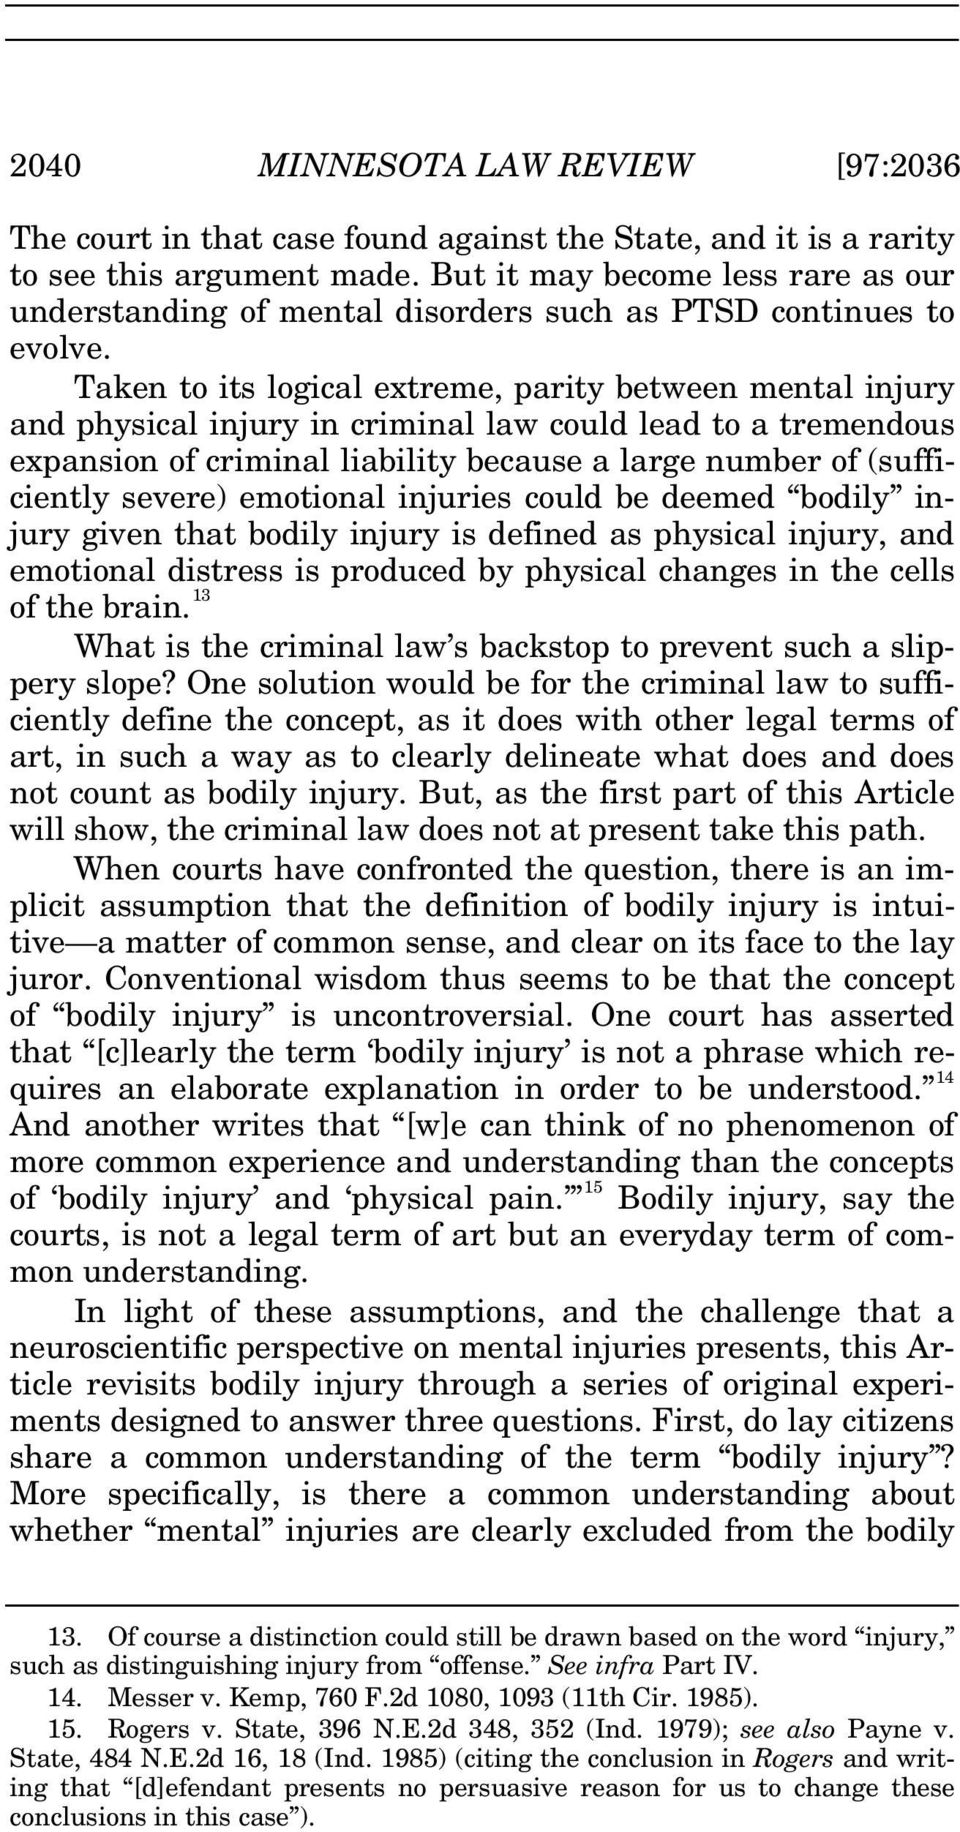 Taken to its logical extreme, parity between mental injury and physical injury in criminal law could lead to a tremendous expansion of criminal liability because a large number of (sufficiently